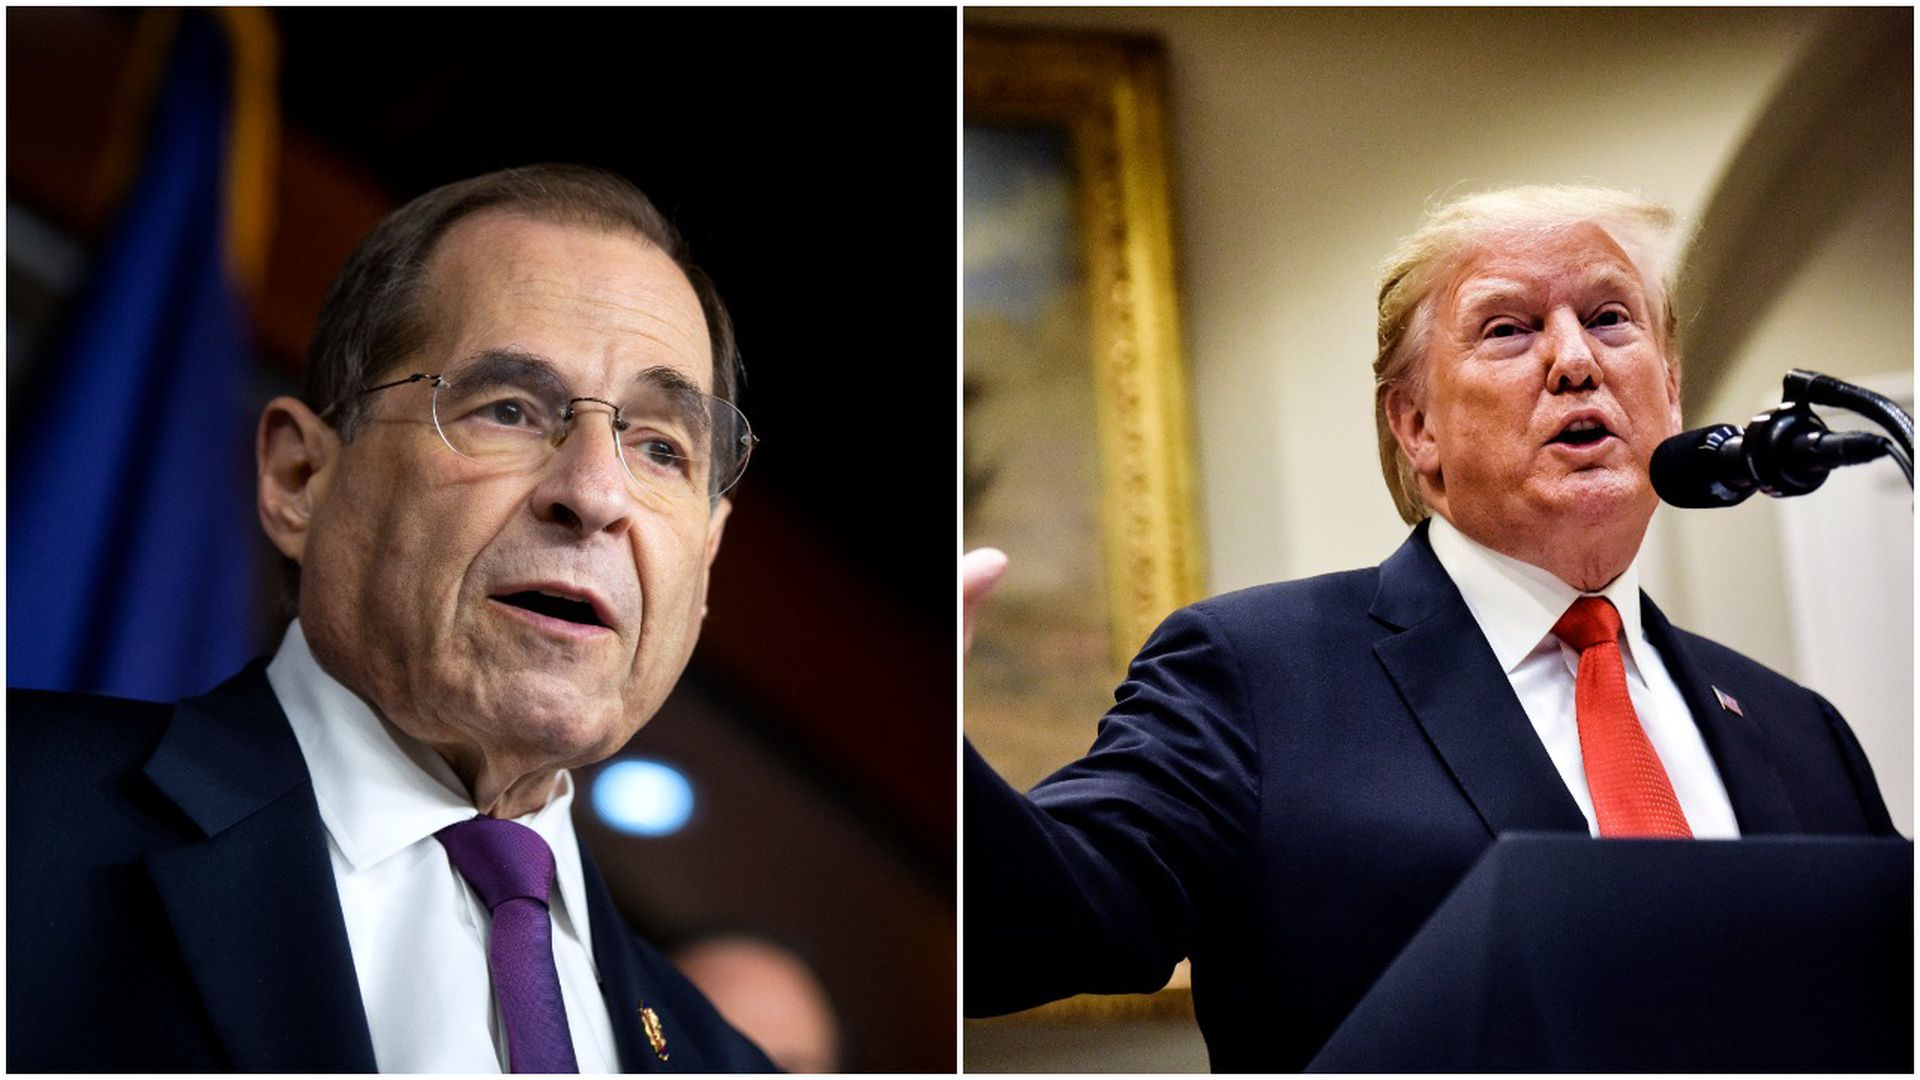 This image is a two-way splitscreen between Nadler and Trump.